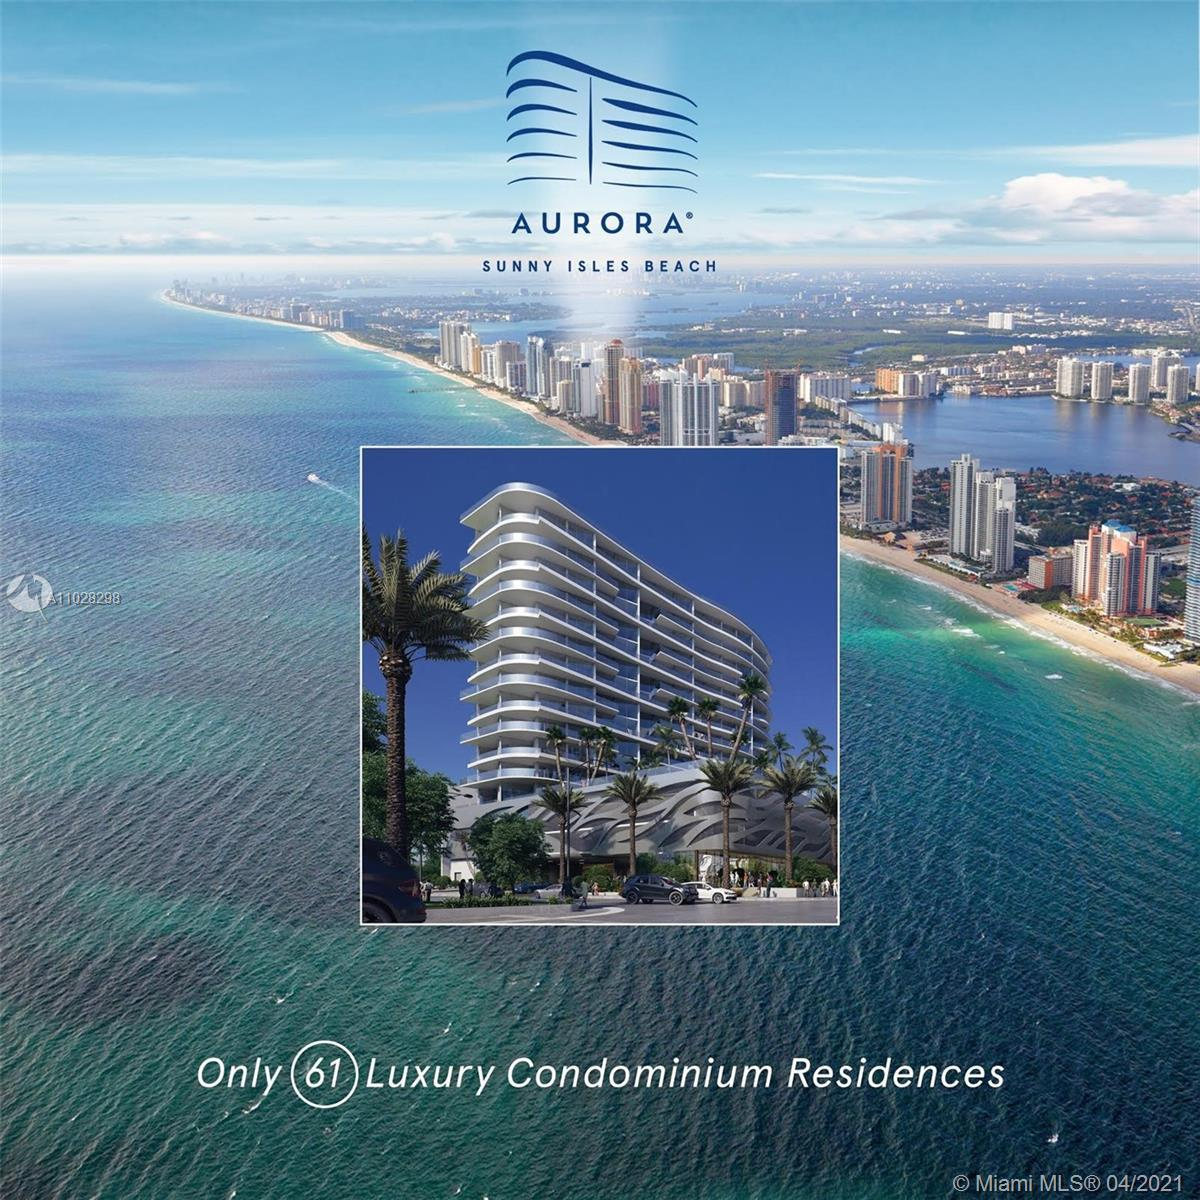 Pre-construction unit in Aurora, Sunny Isles Beach ready first quarter of 2022. 61 units in a luxury